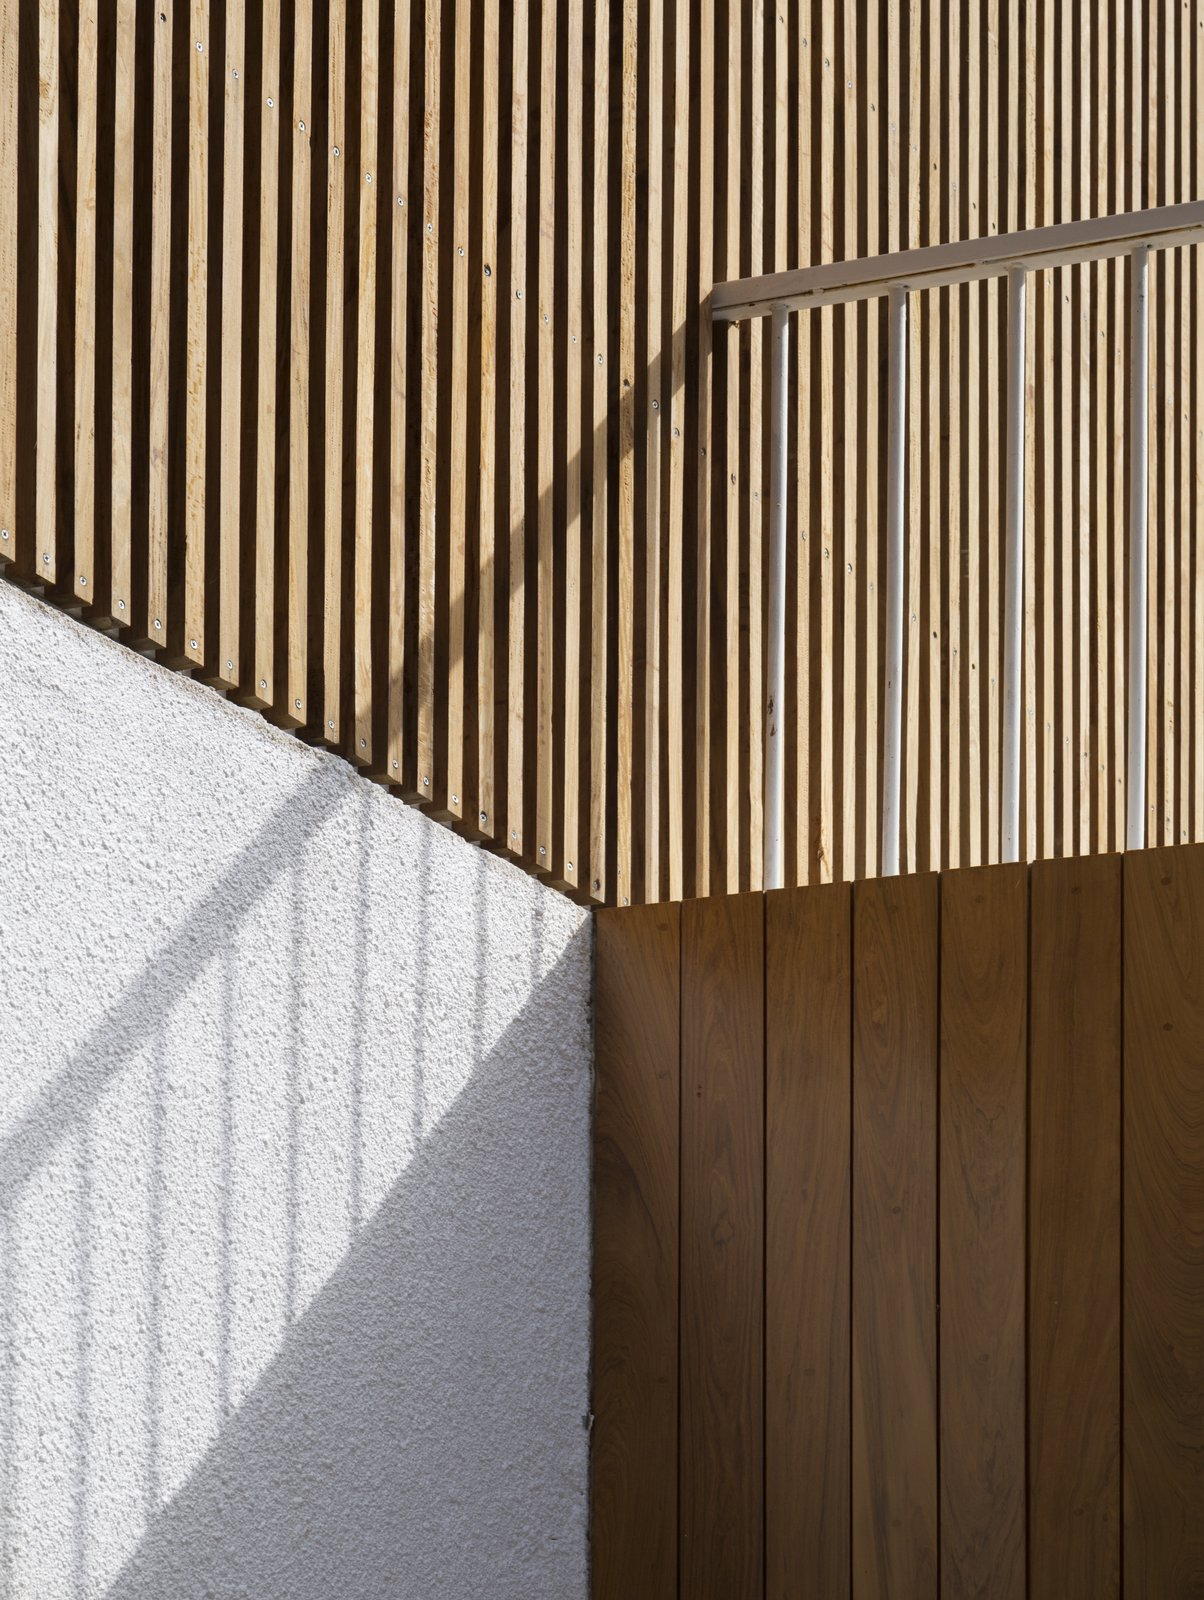 Outdoor, Vertical Fences, Wall, Wood Patio, Porch, Deck, Wood Fences, Wall, Concrete Patio, Porch, Deck, and Front Yard Detail  Casa Plaza by mass arquitectos